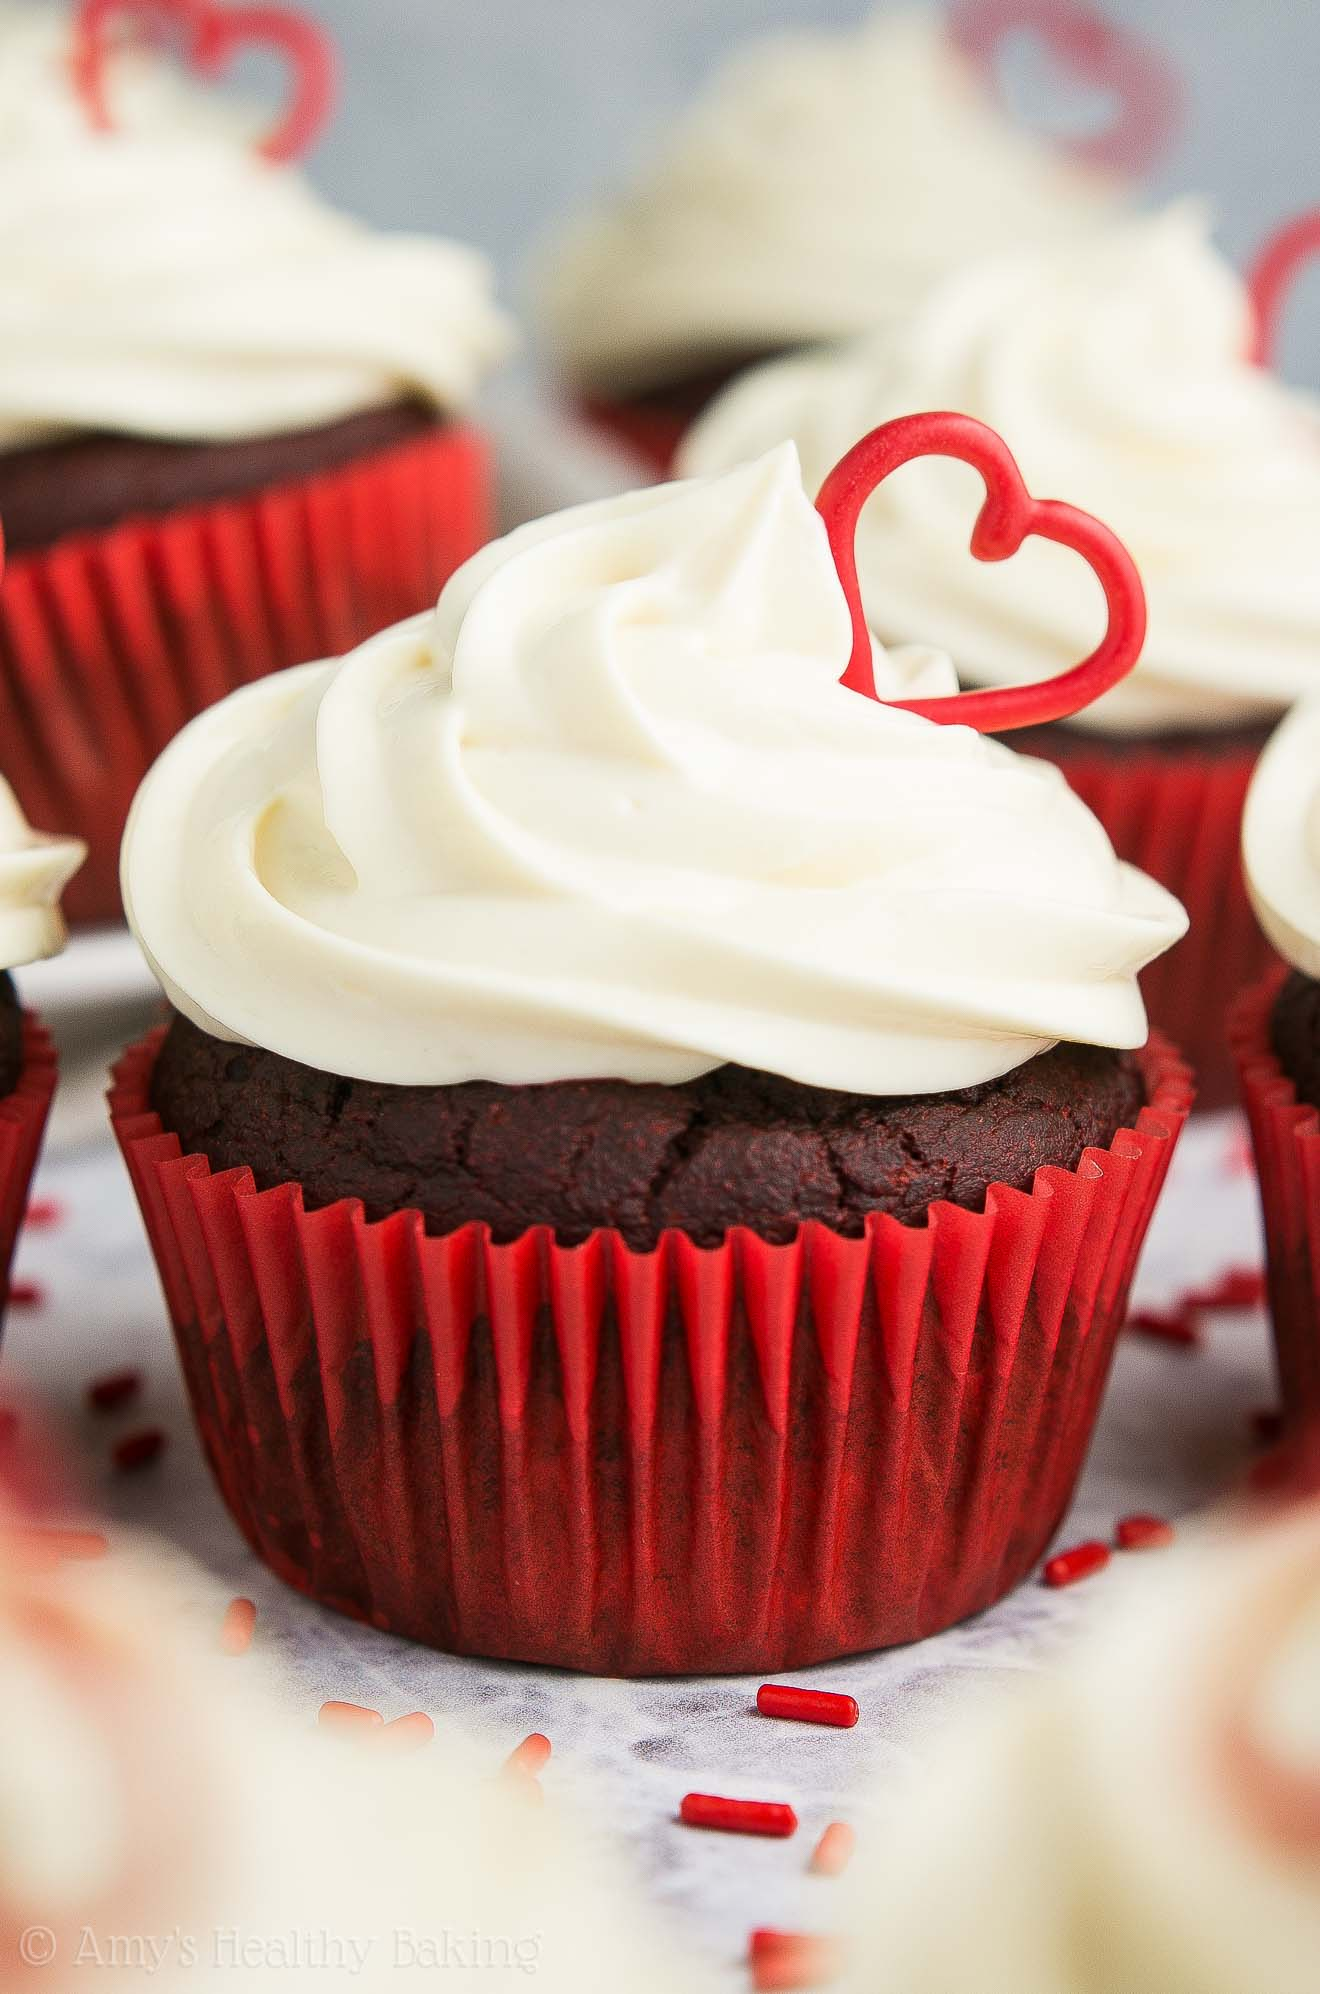 The ULTIMATE Healthy Red Velvet Cupcakes, topped with cream cheese frosting